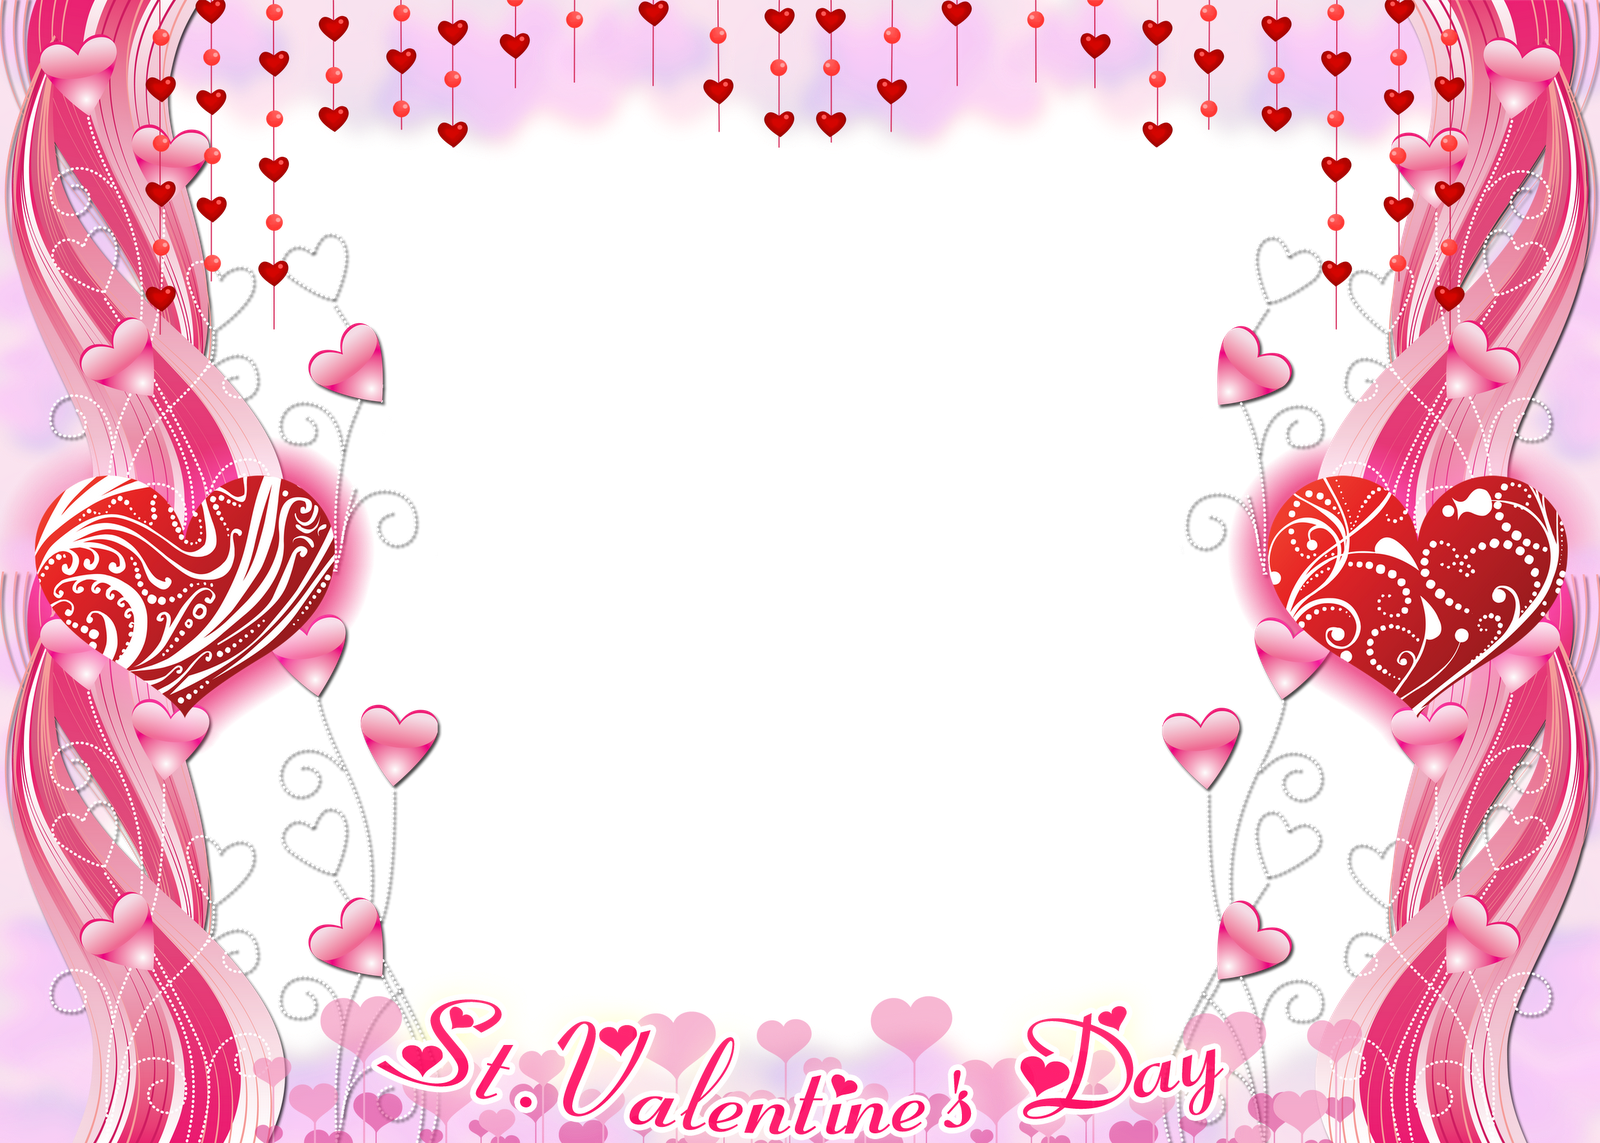 Romantic Frame Photo Png image #27892